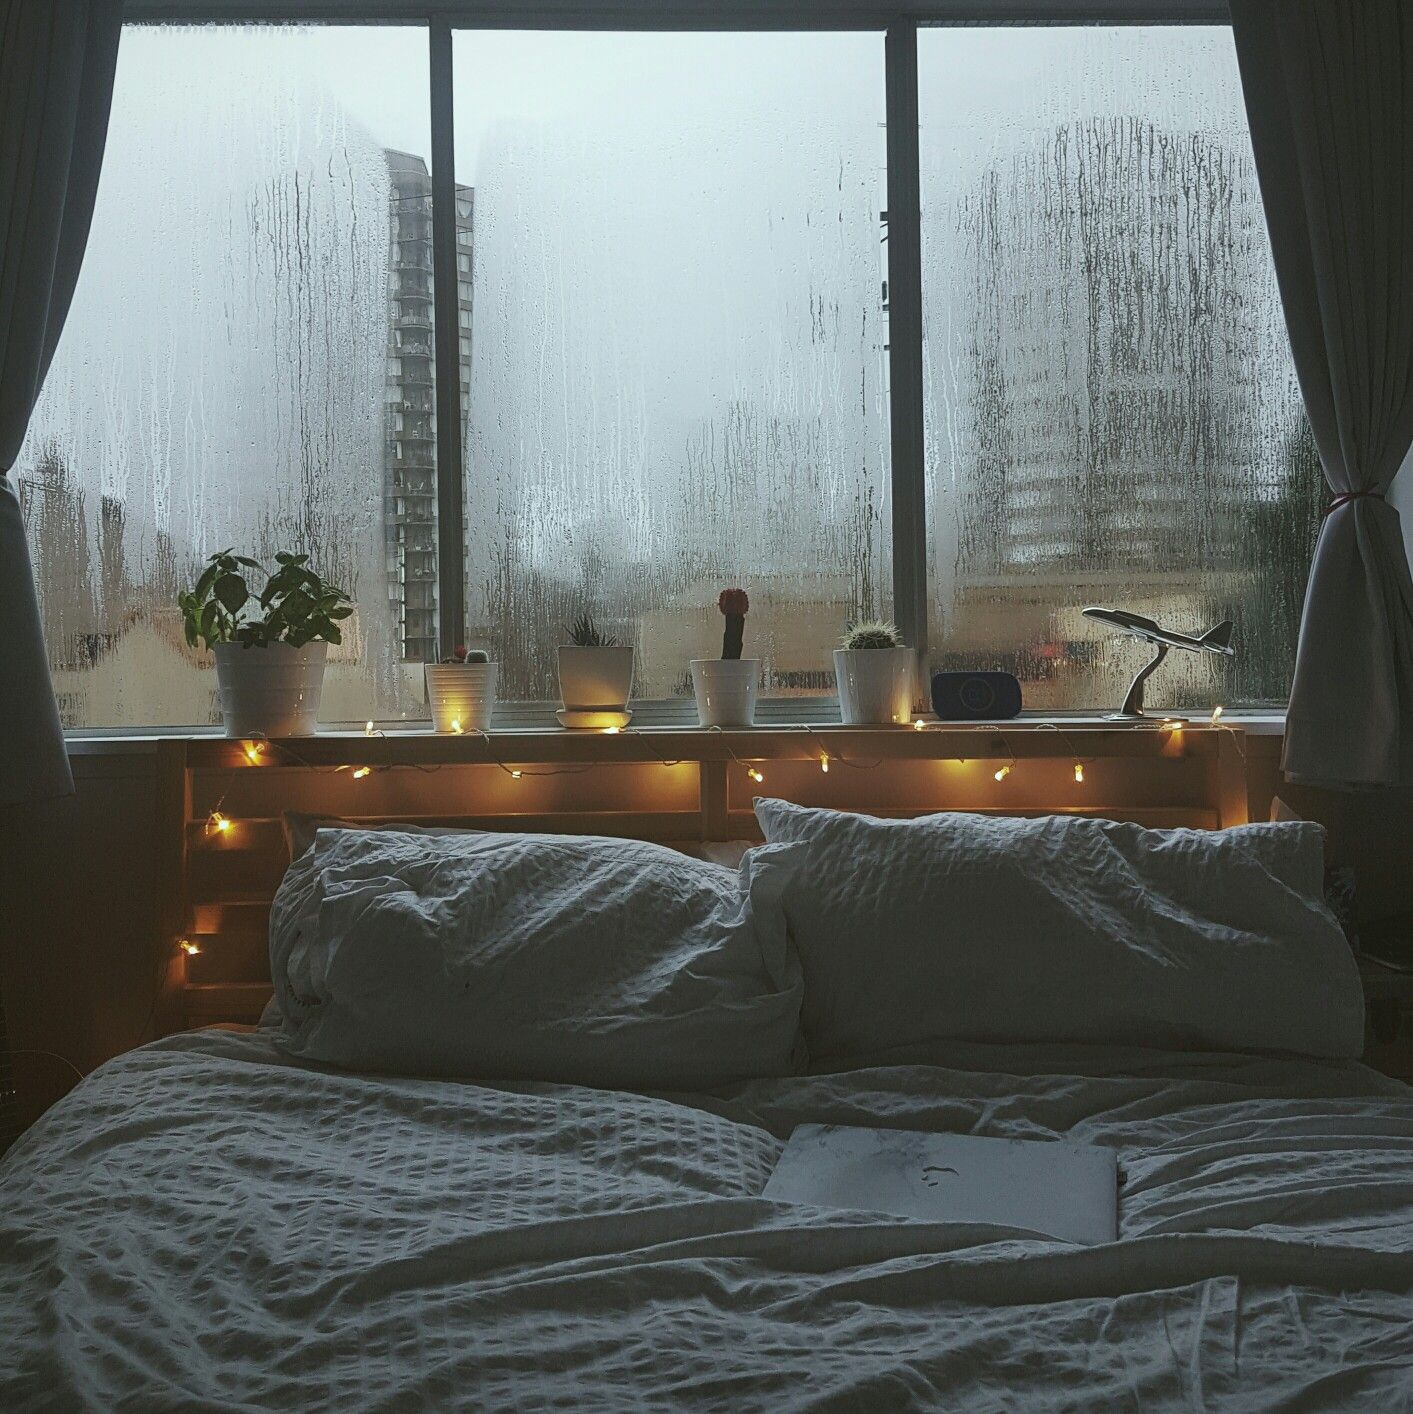 rainy days i would stay in that bed forever and ever. Black Bedroom Furniture Sets. Home Design Ideas